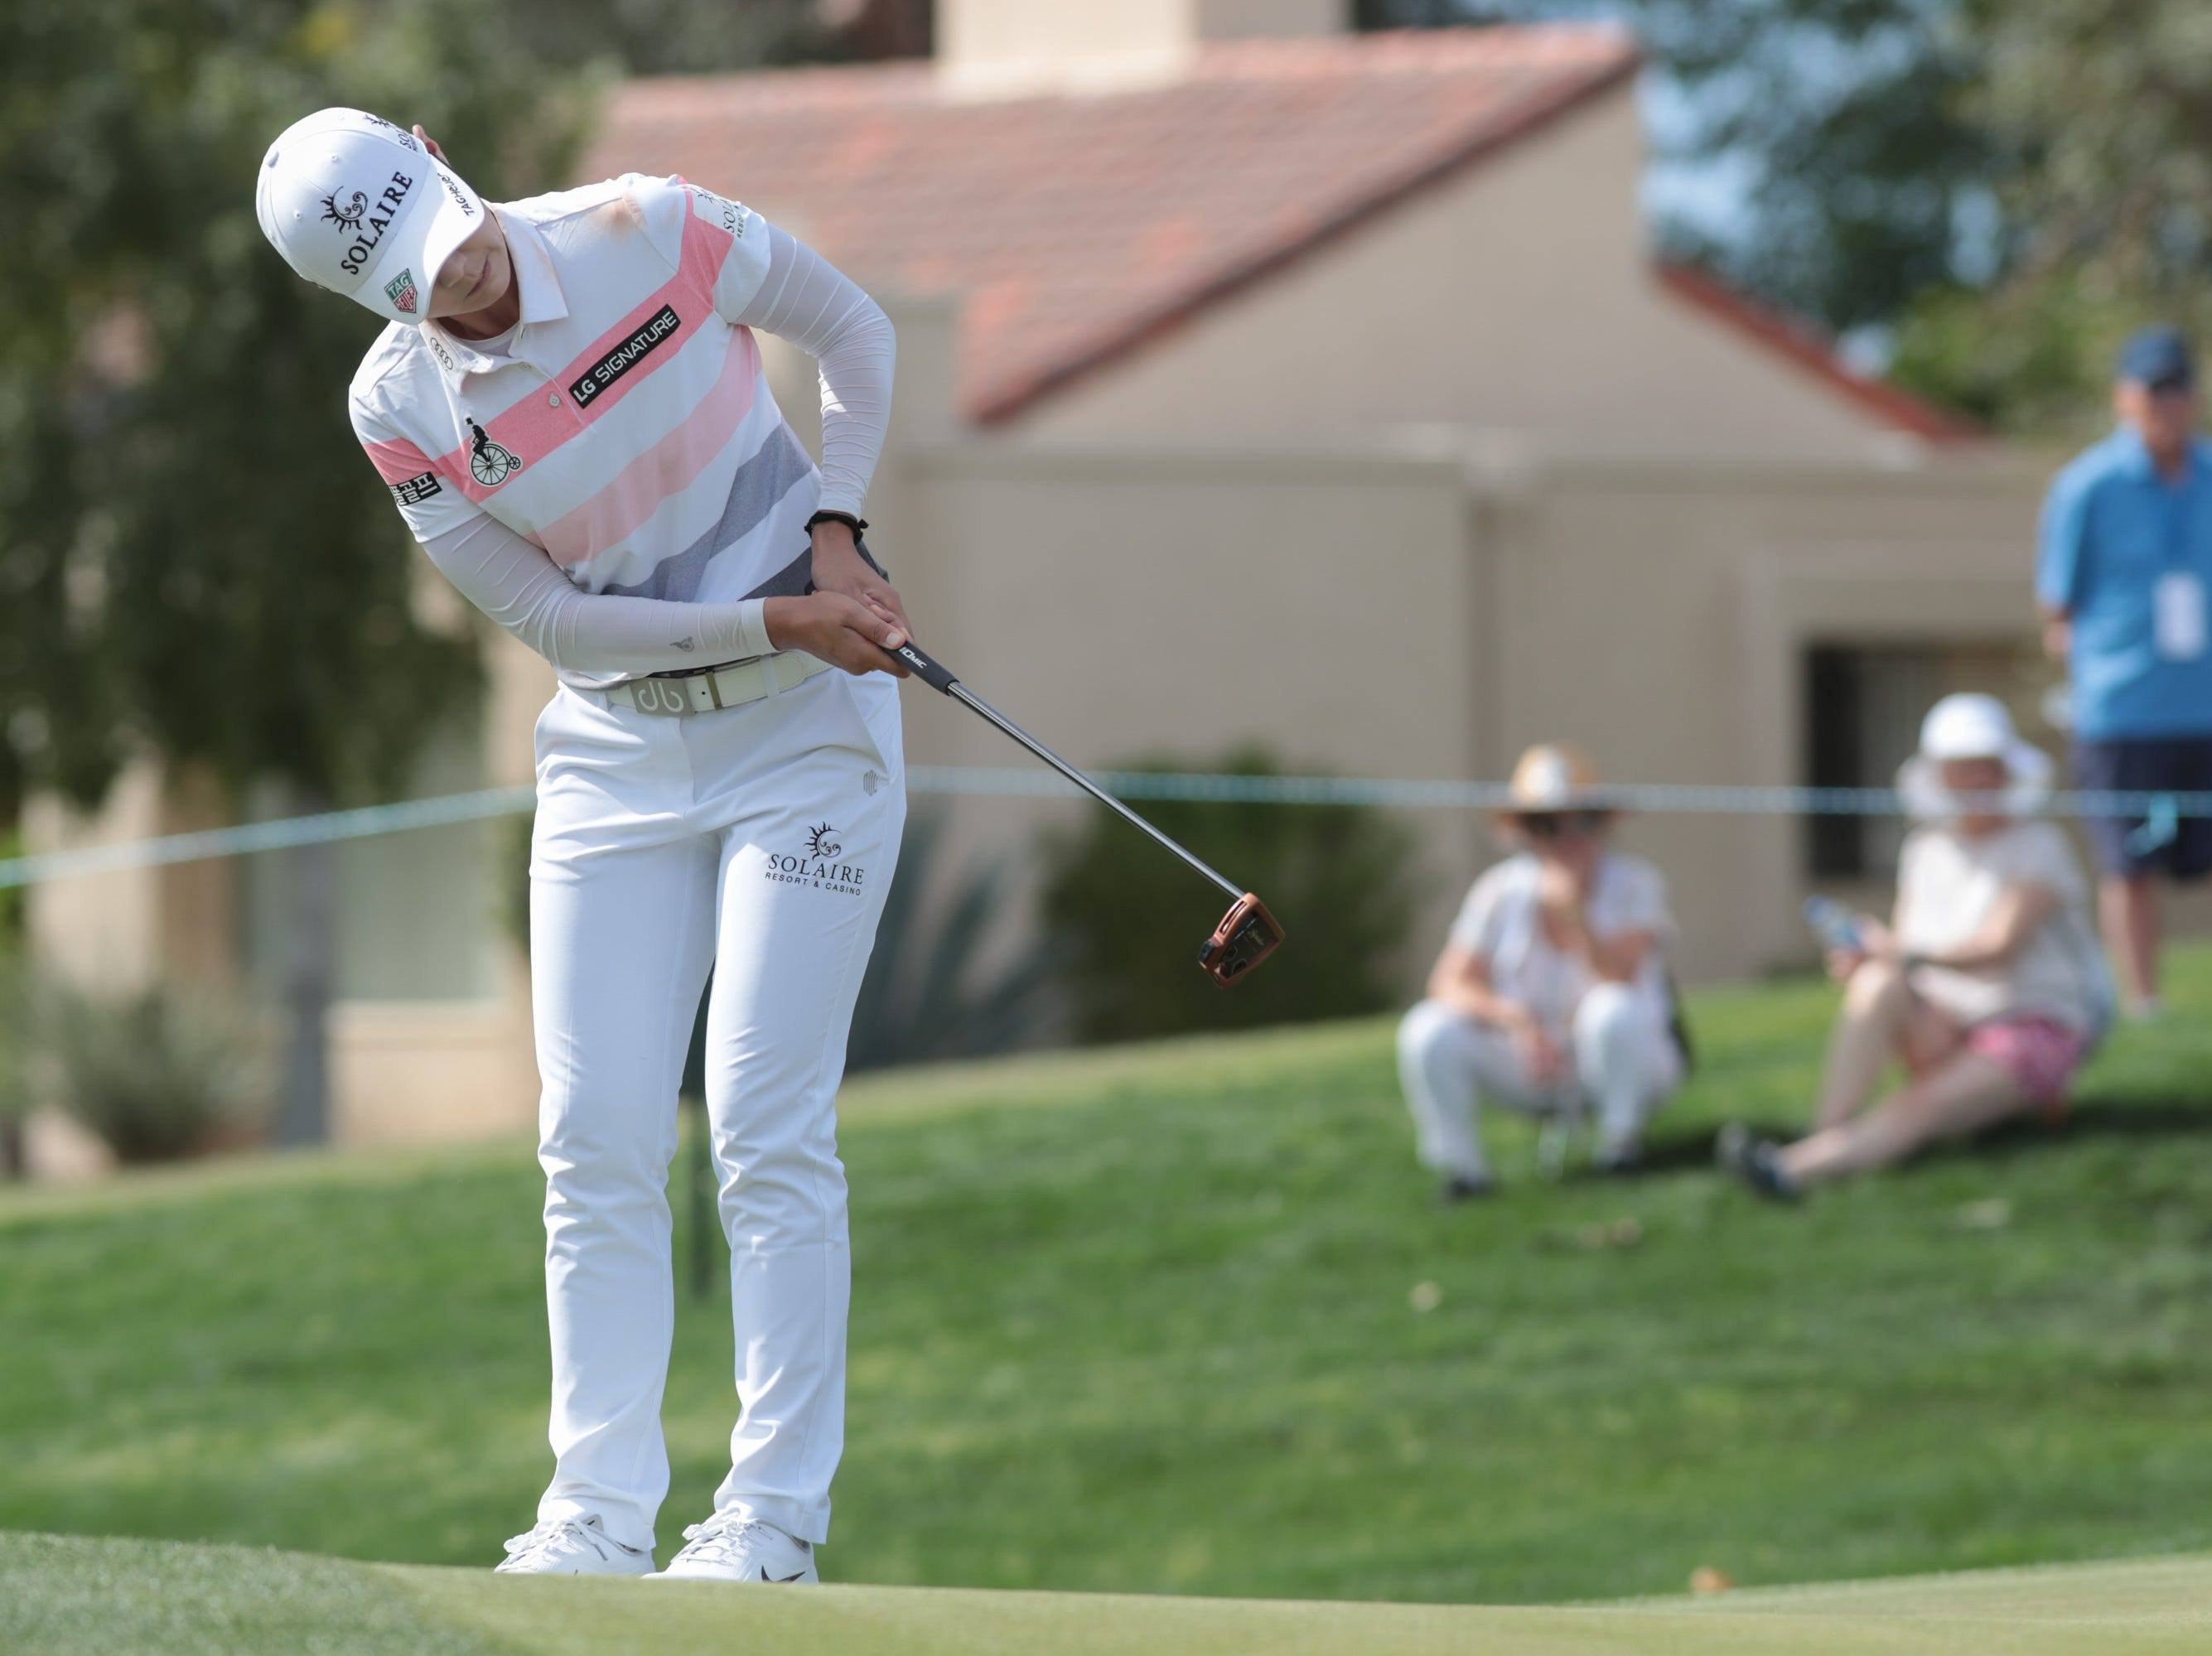 Sung Hyun Park putts on the ninth hole of the Dinah Shore Course at the ANA Inspiration, Rancho Mirage, Calif., April 6, 2019.